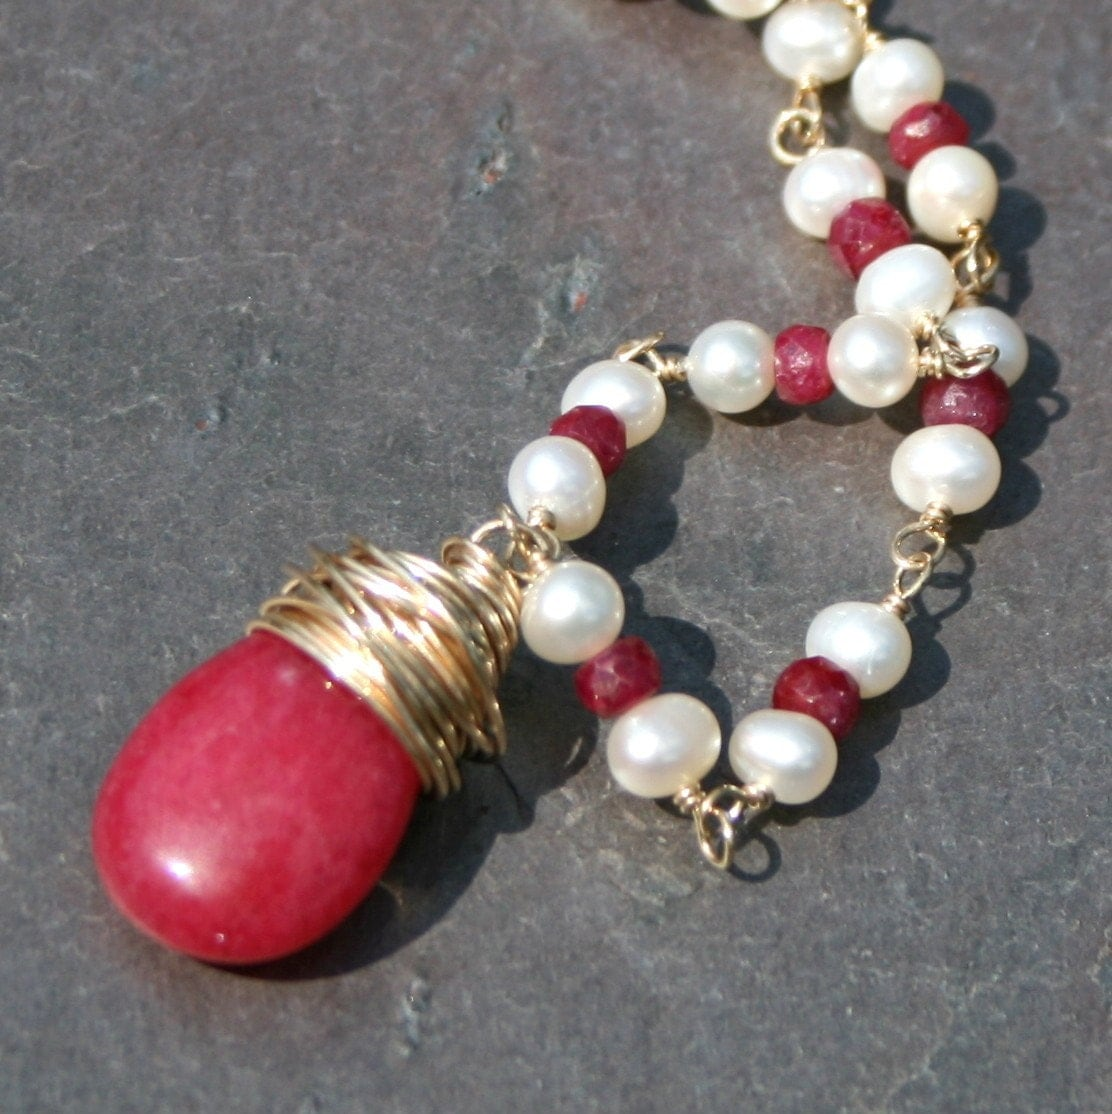 Red Ruby Beads: Red Ruby Pearl Necklace Beaded Necklace Rubies Red And Gold